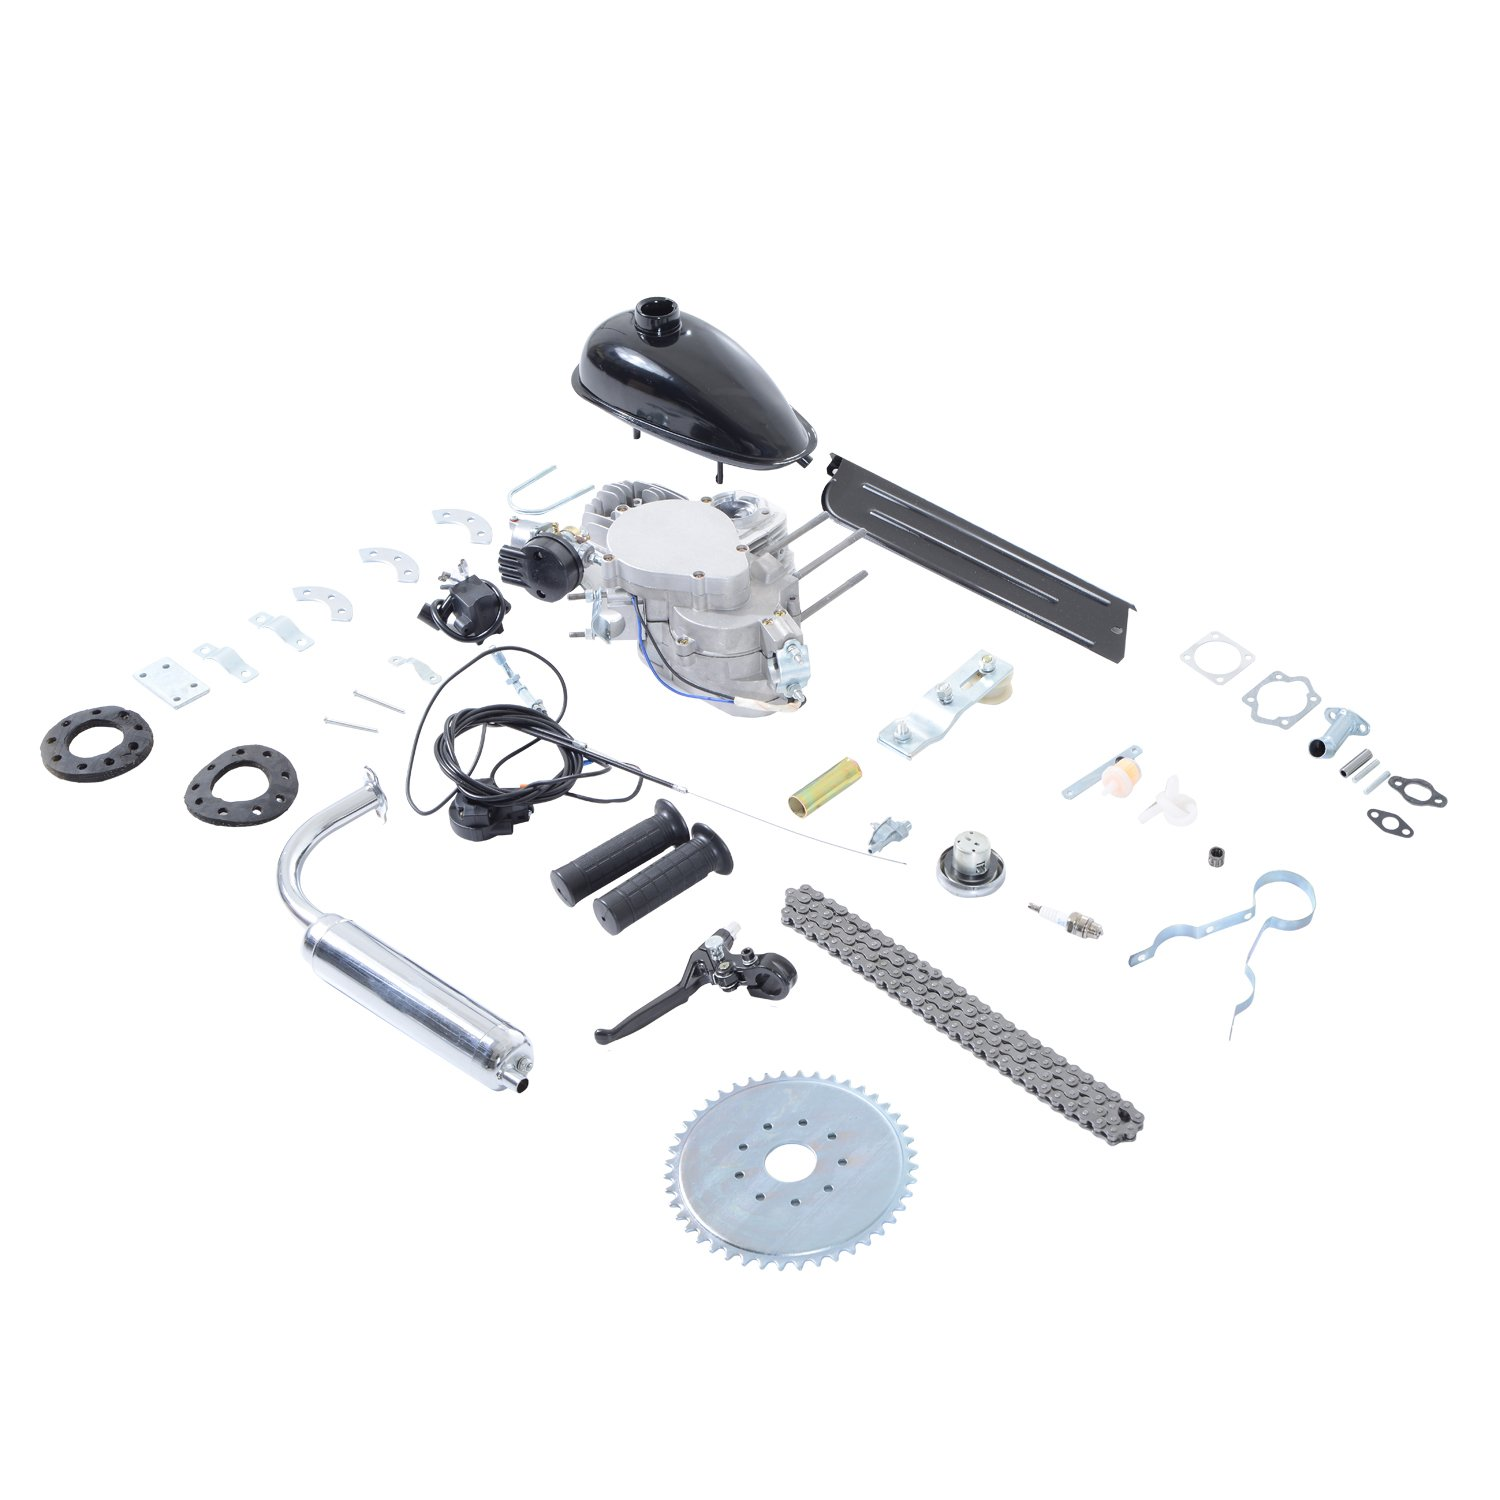 Aosom 60cc 2 Stroke Gas Engine Motor Kit for 26'' or 28'' Bicycle - Silver by Aosom